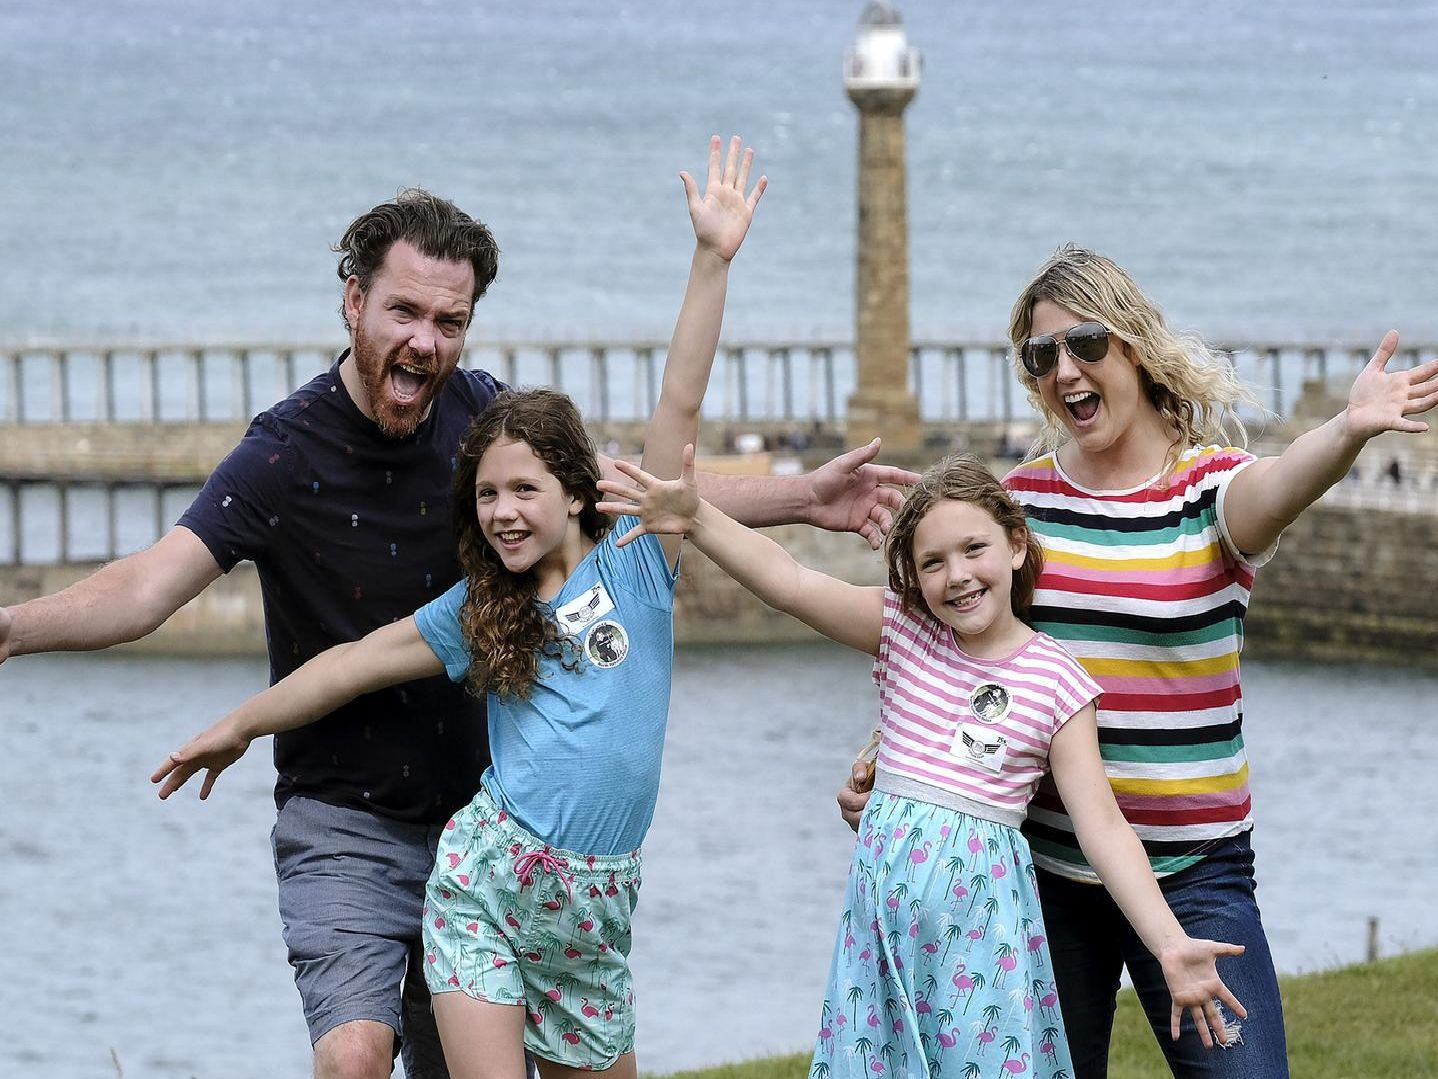 Family fun on the West Cliff